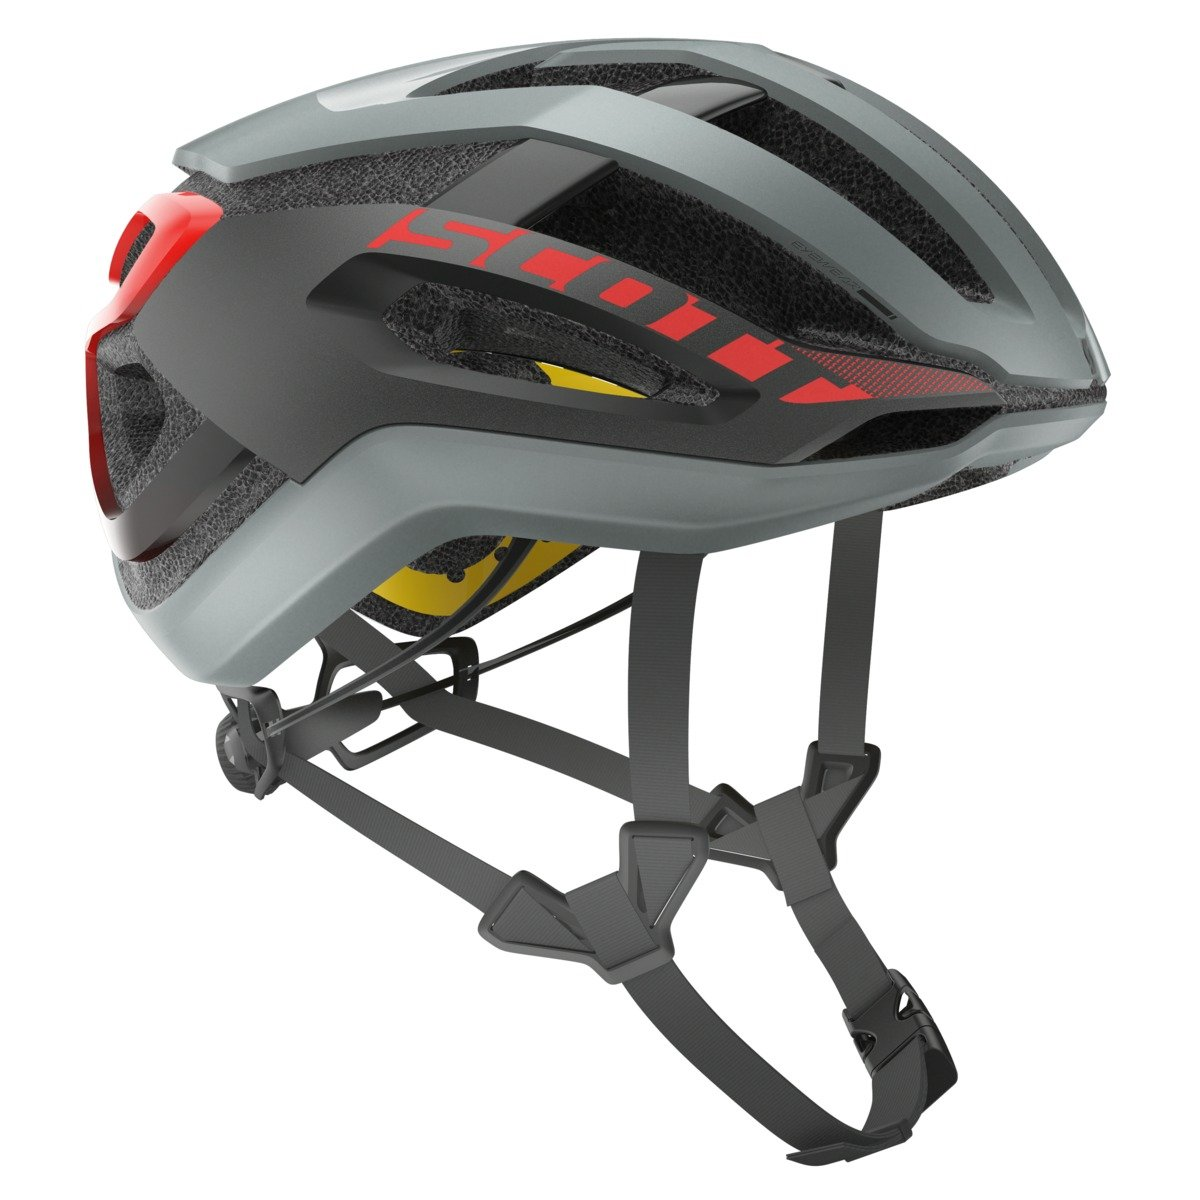 SCOTT(スコット) ヘルメット Helmet Centric PLUS grey/red M 2500231049007 グレー/レッド M   B071GLNL1D